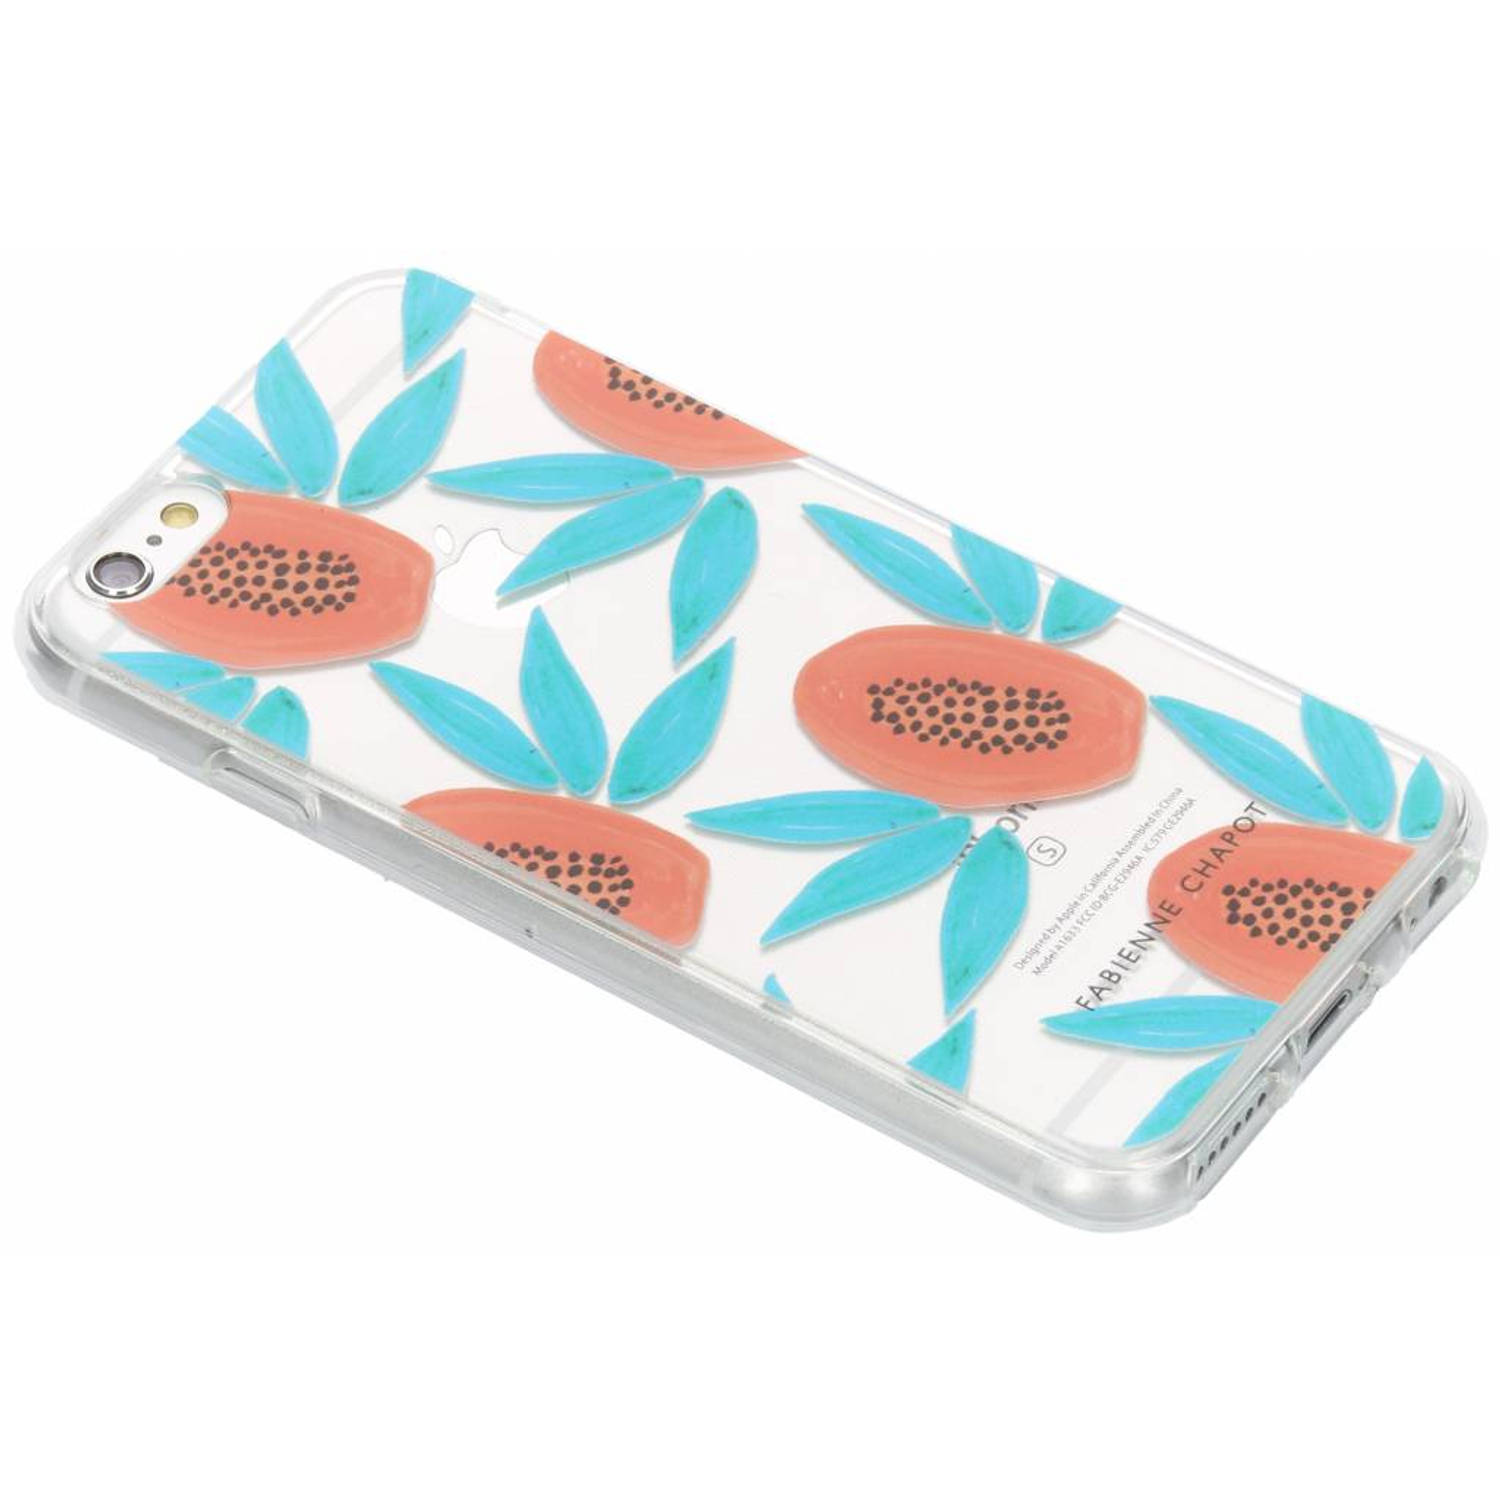 Papaya Softcase voor de iPhone 6 / 6s